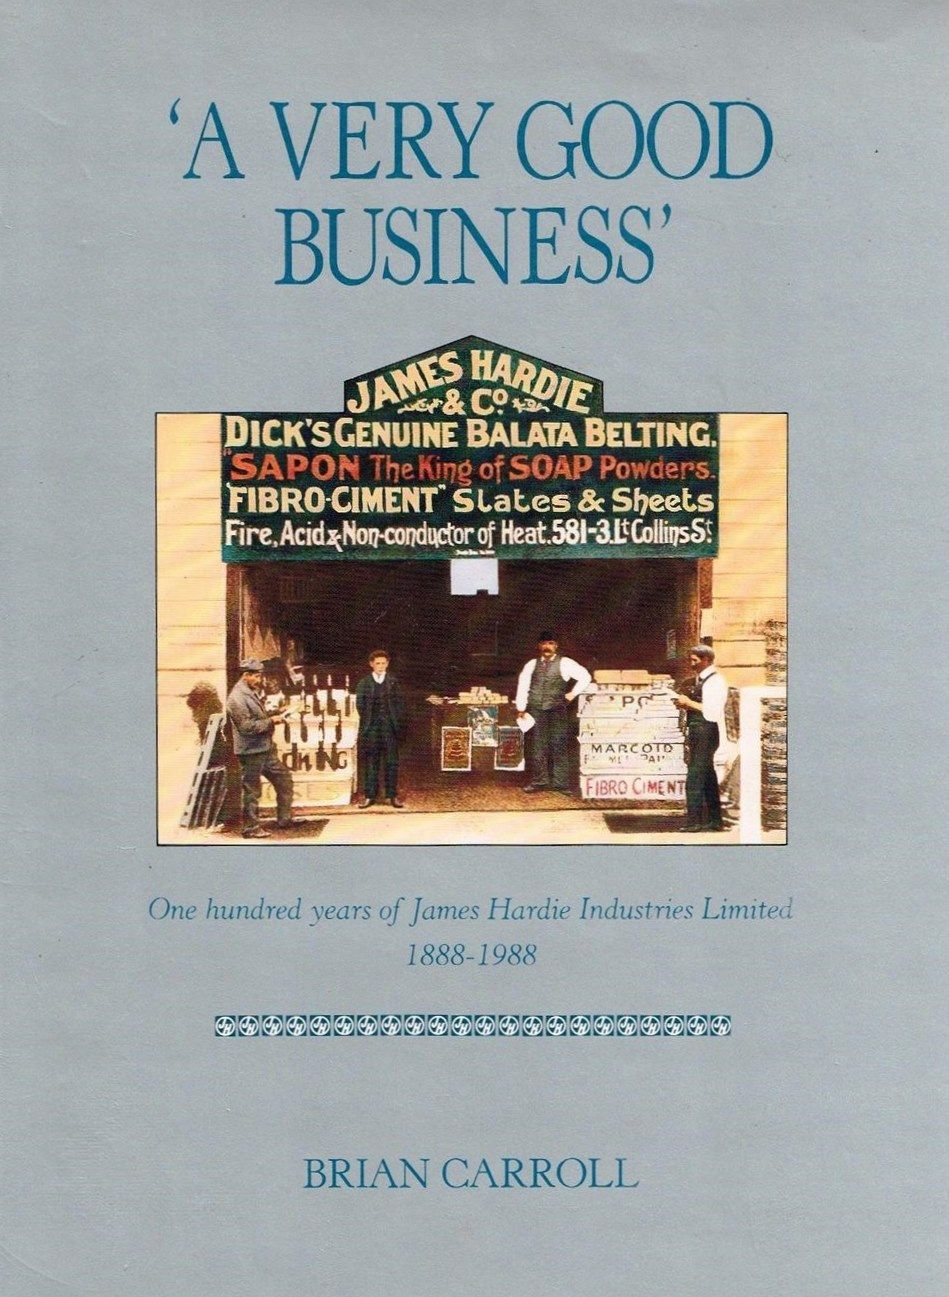 A VERY GOOD BUSINESS: 100 Years of James Hardie Industries